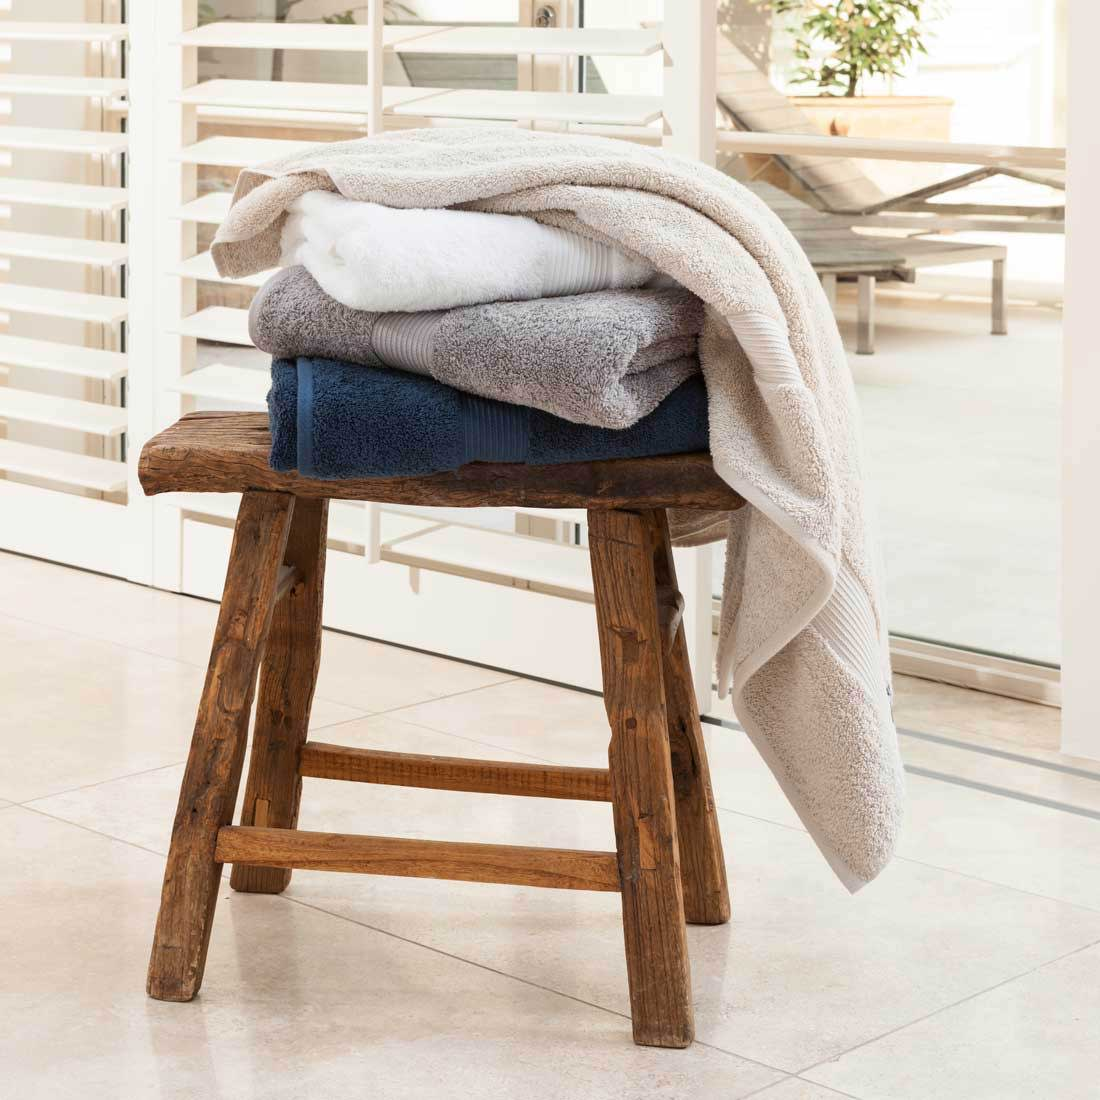 Canningvale Royale Towels - bathroom luxury